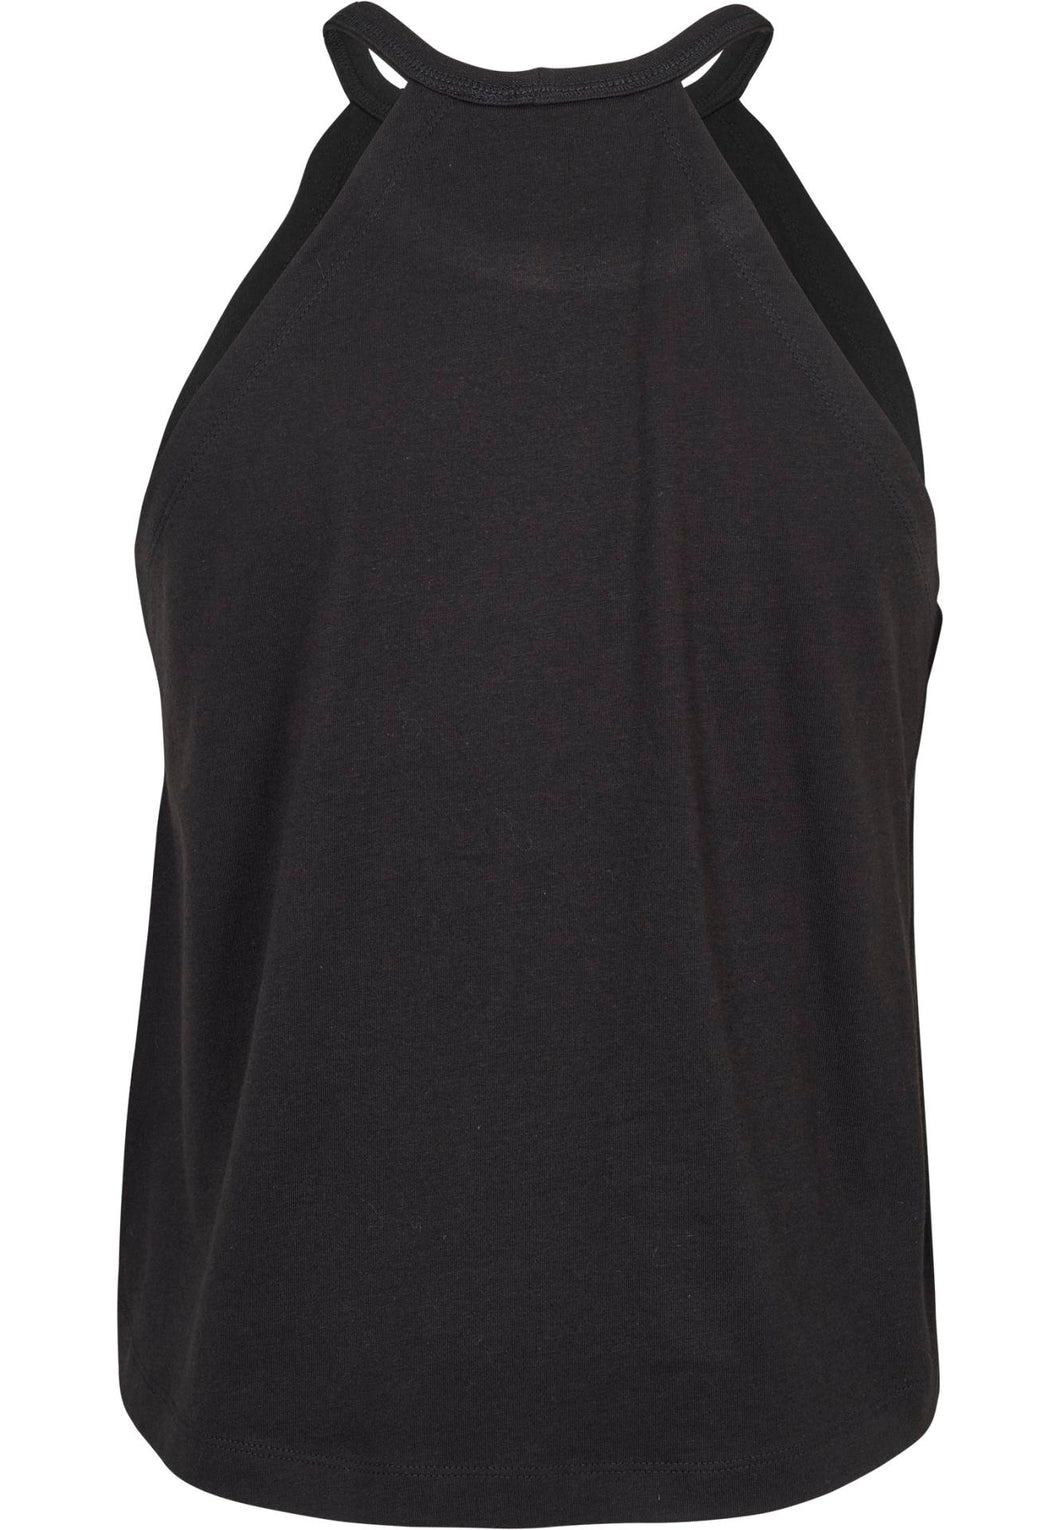 Urban Classics Plus Size Floaty Vest Top - Kate's Clothing